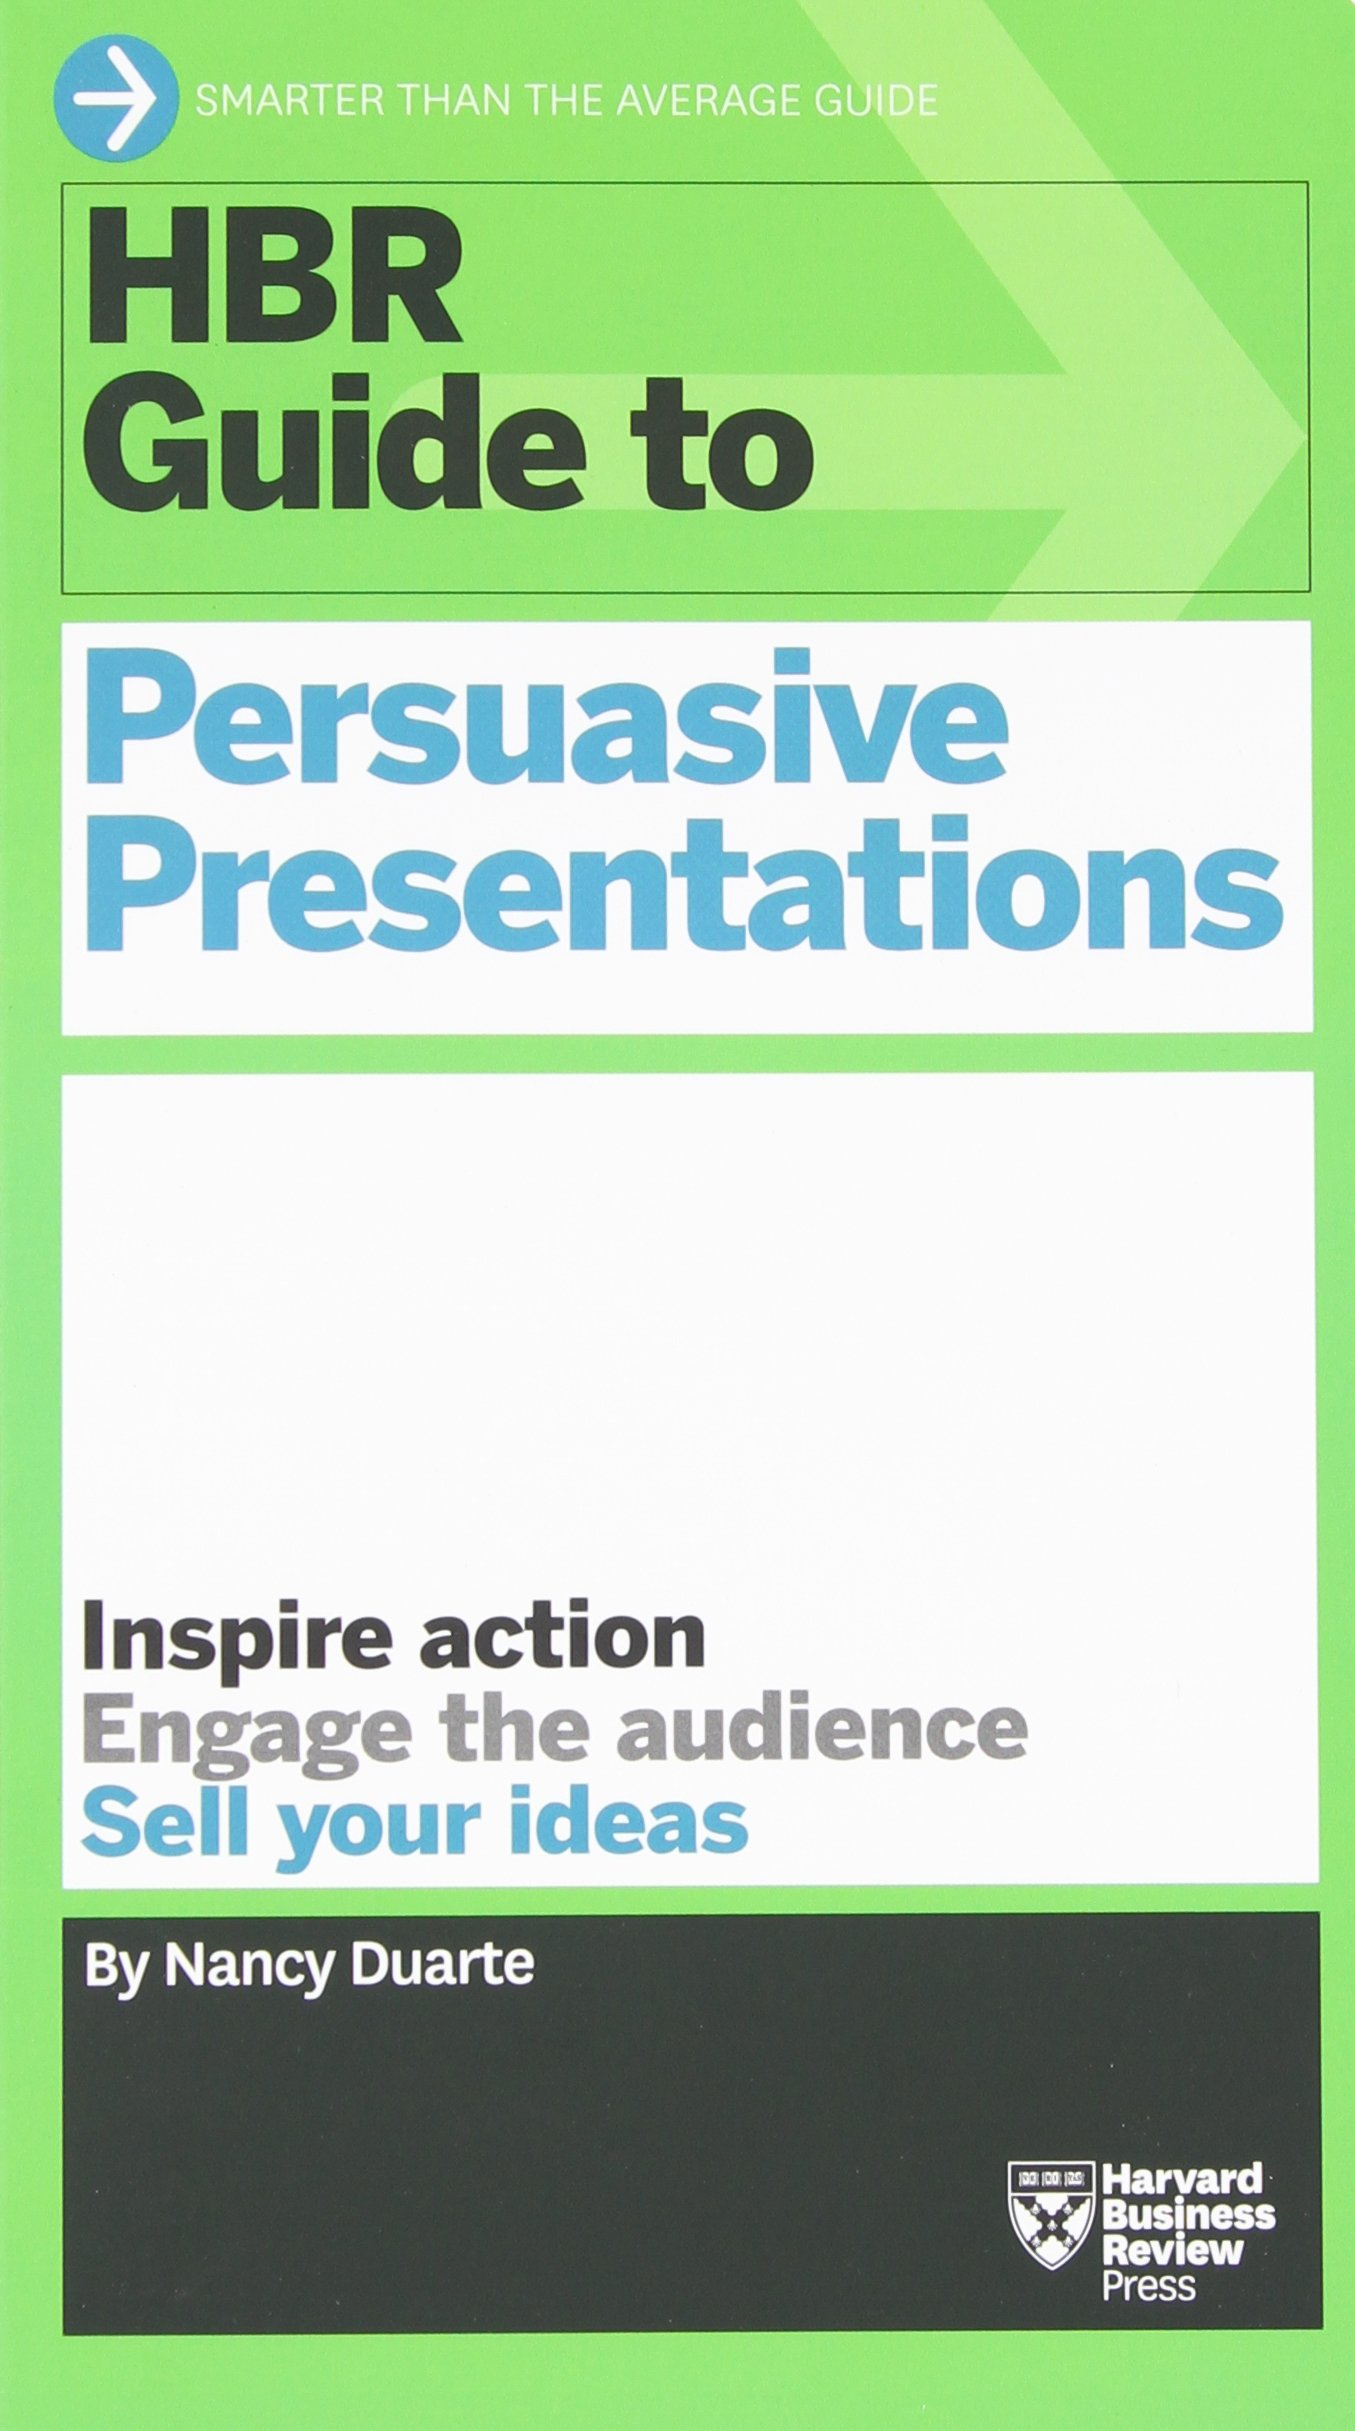 HBR Guide Persuasive Presentations product image